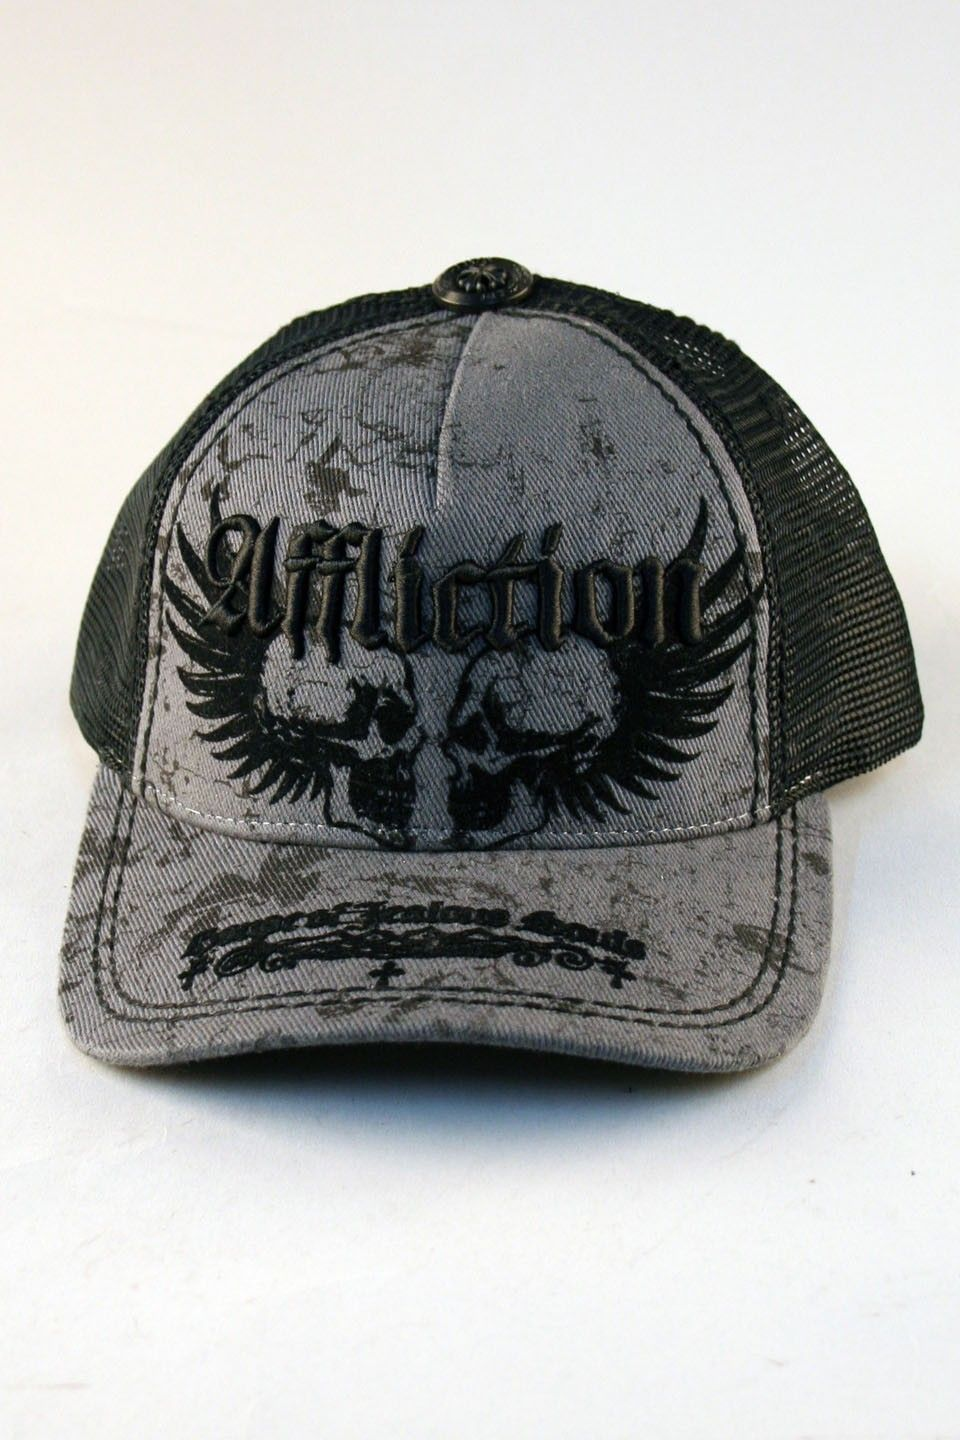 5e7cc648330 Affliction® Neglect Trucker Hat in Grey for Men and Women Affliction  clothing makes cool alternatives to mens fitted caps including Neglect